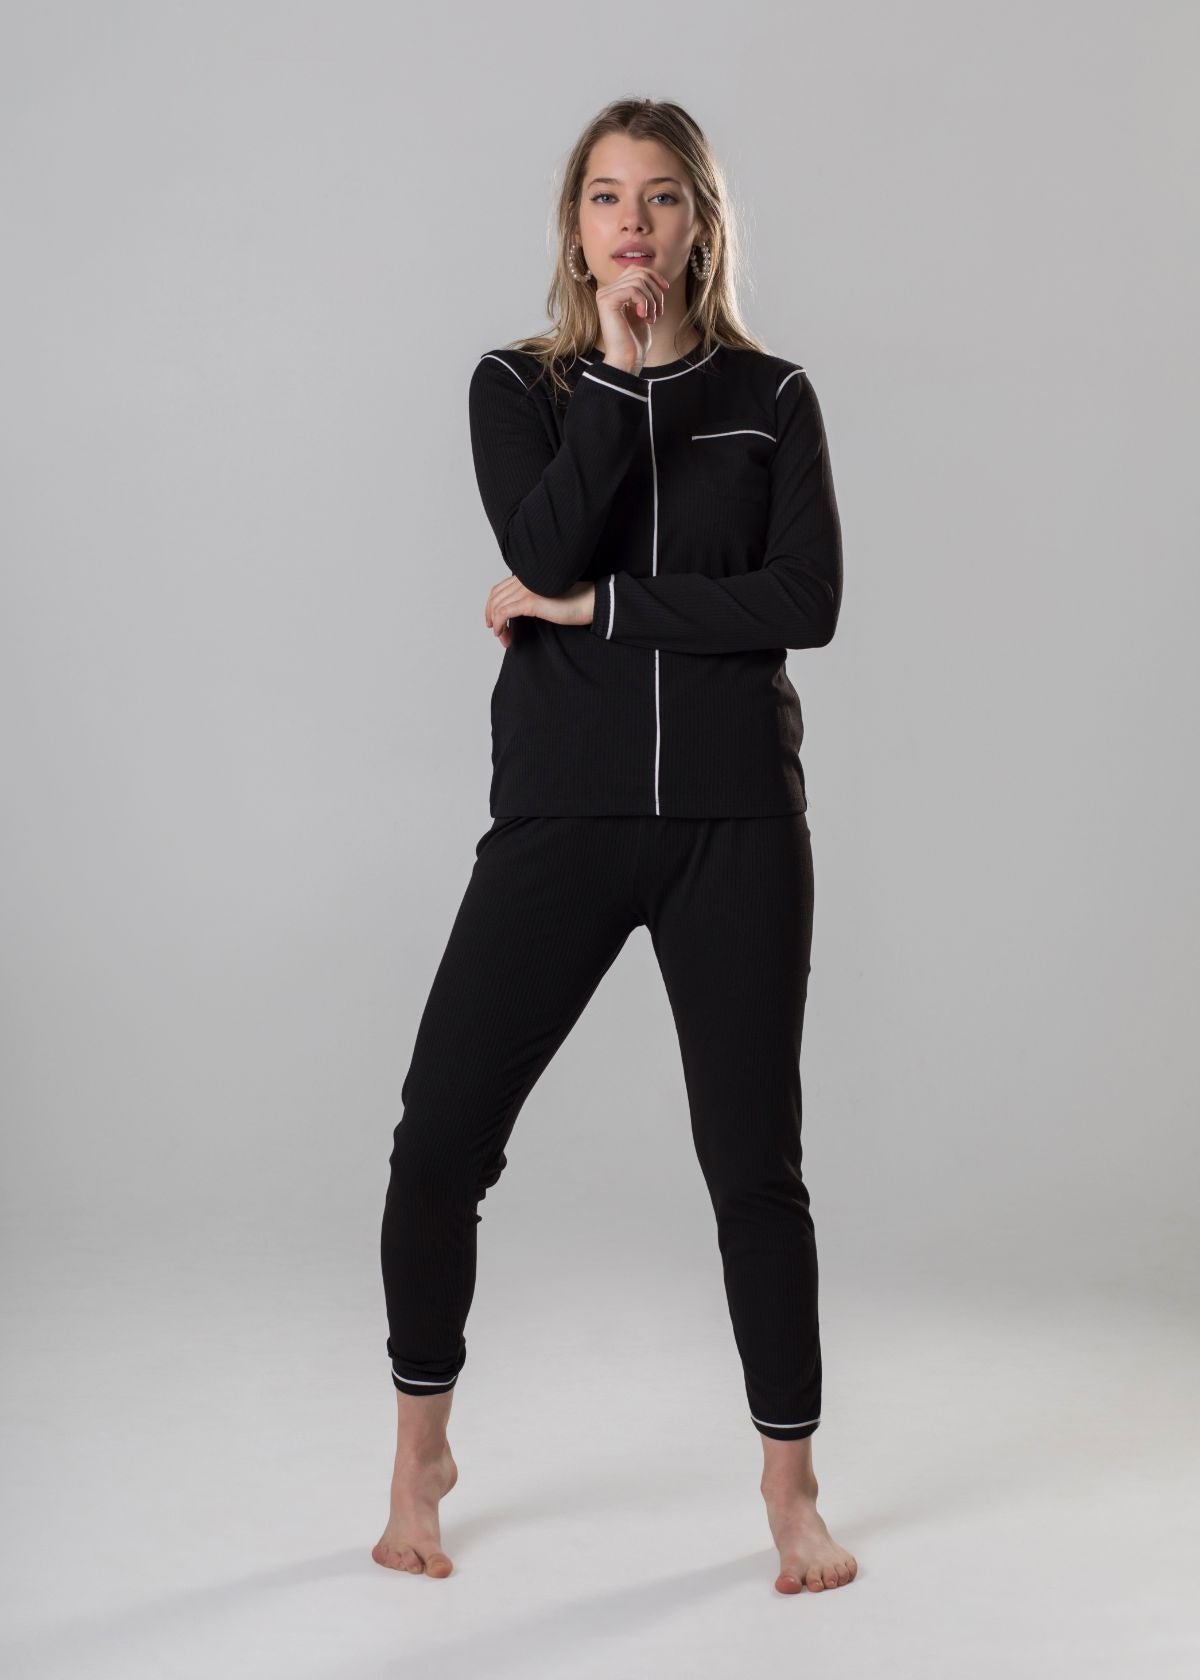 Ellwi Black Ribbed Modal PJ's with White Piping